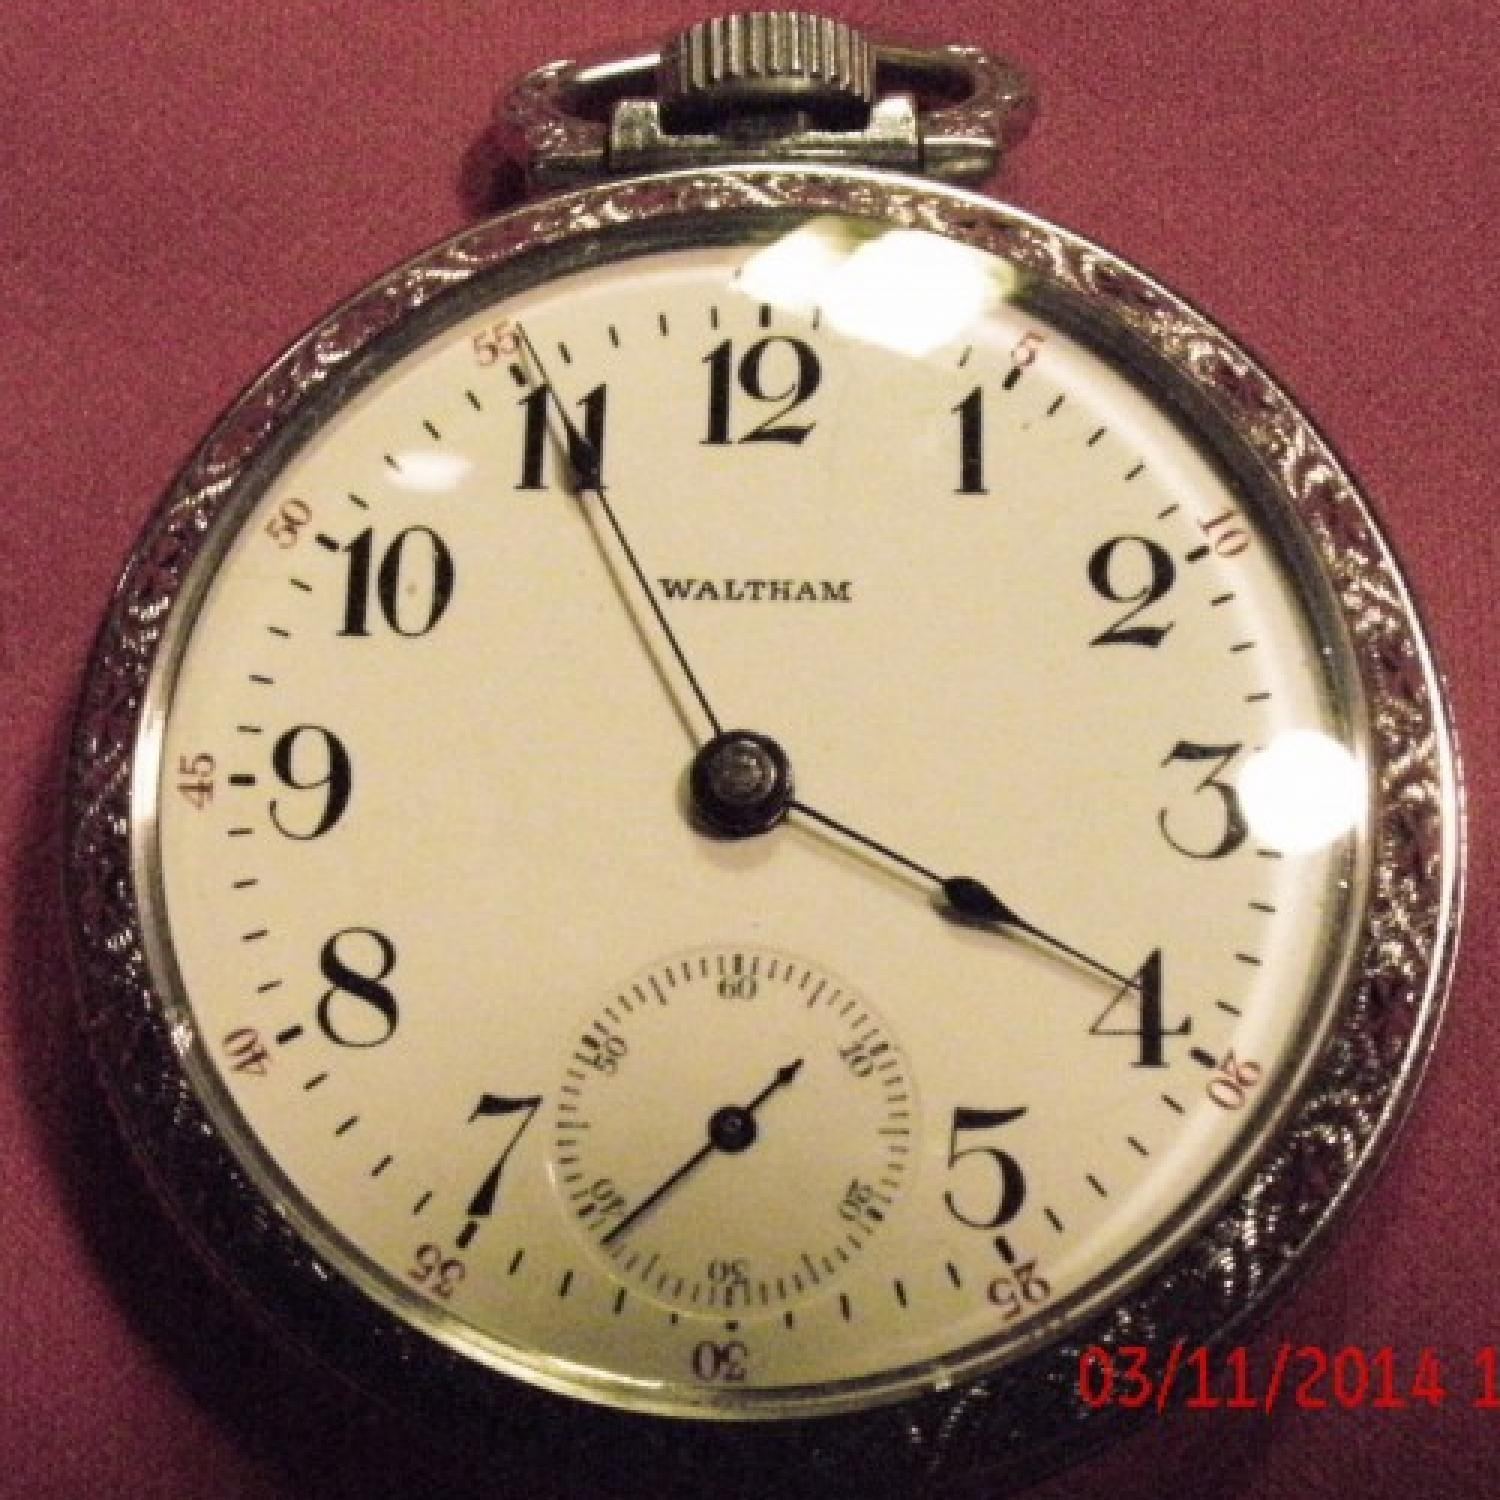 Image of Waltham No. 81 #10308124 Dial